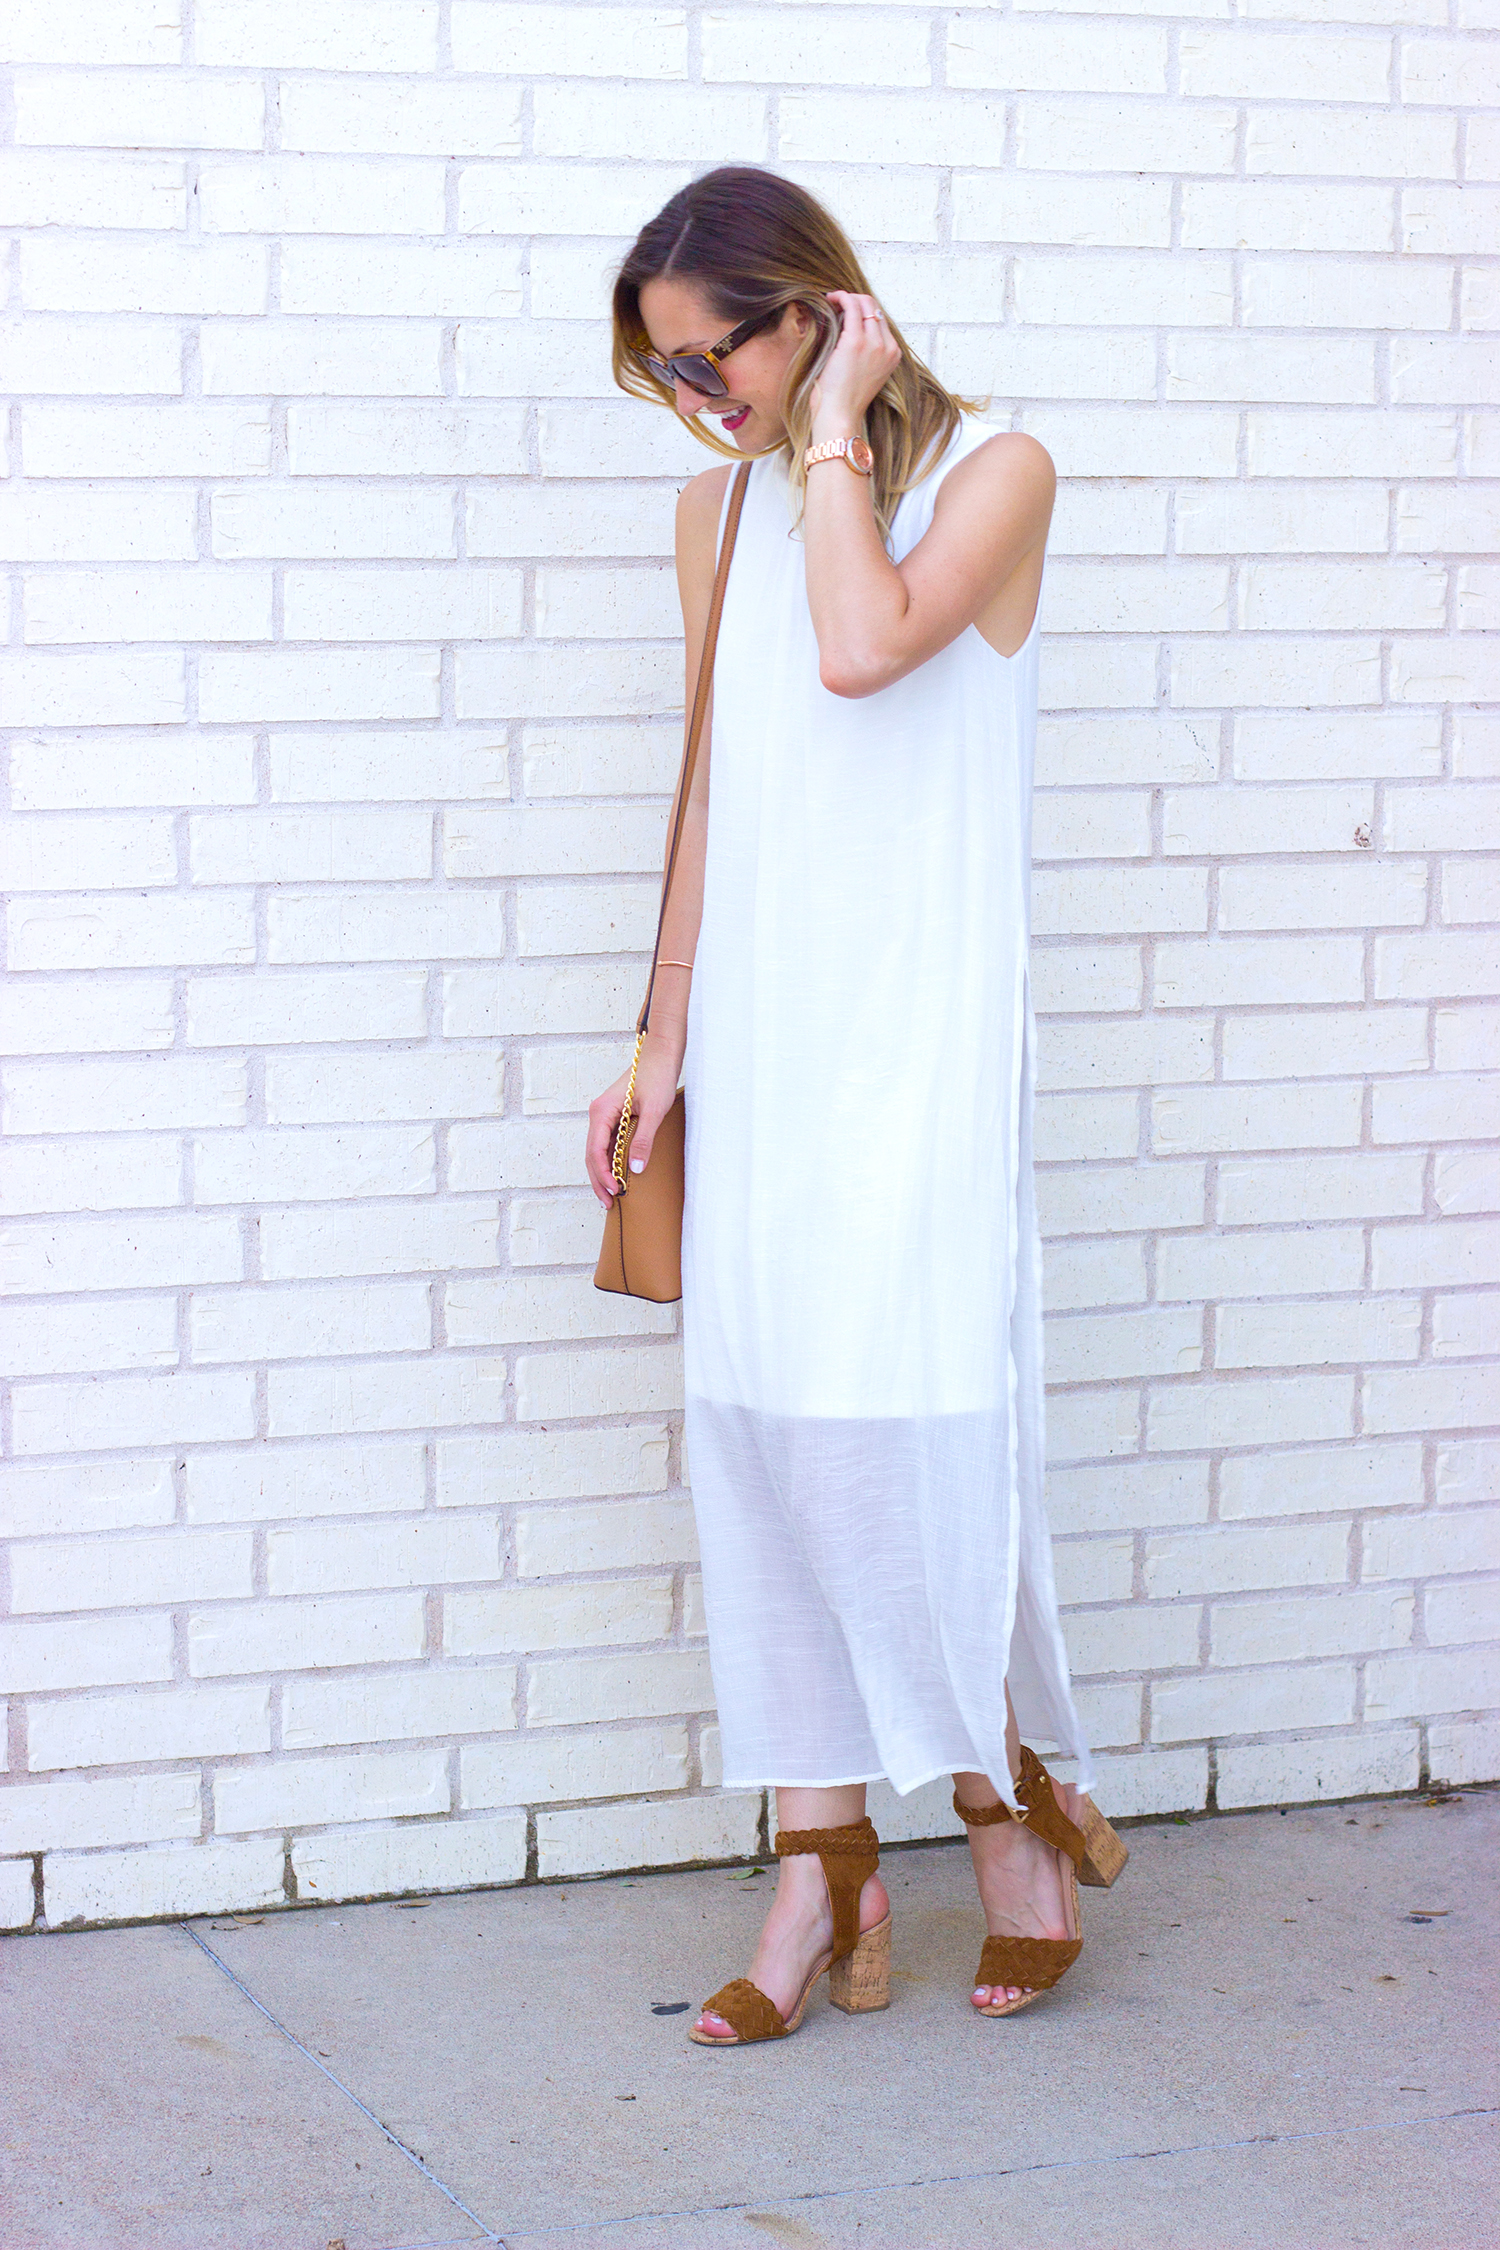 livvyland-blog-olivia-watson-white-sheer-midi-dress-painted-threads-braided-sandal-heels-austin-texas-fashion-blogger-rose-gold-kendra-scott-prada-cateye-sunglasses-spring-outfit-7